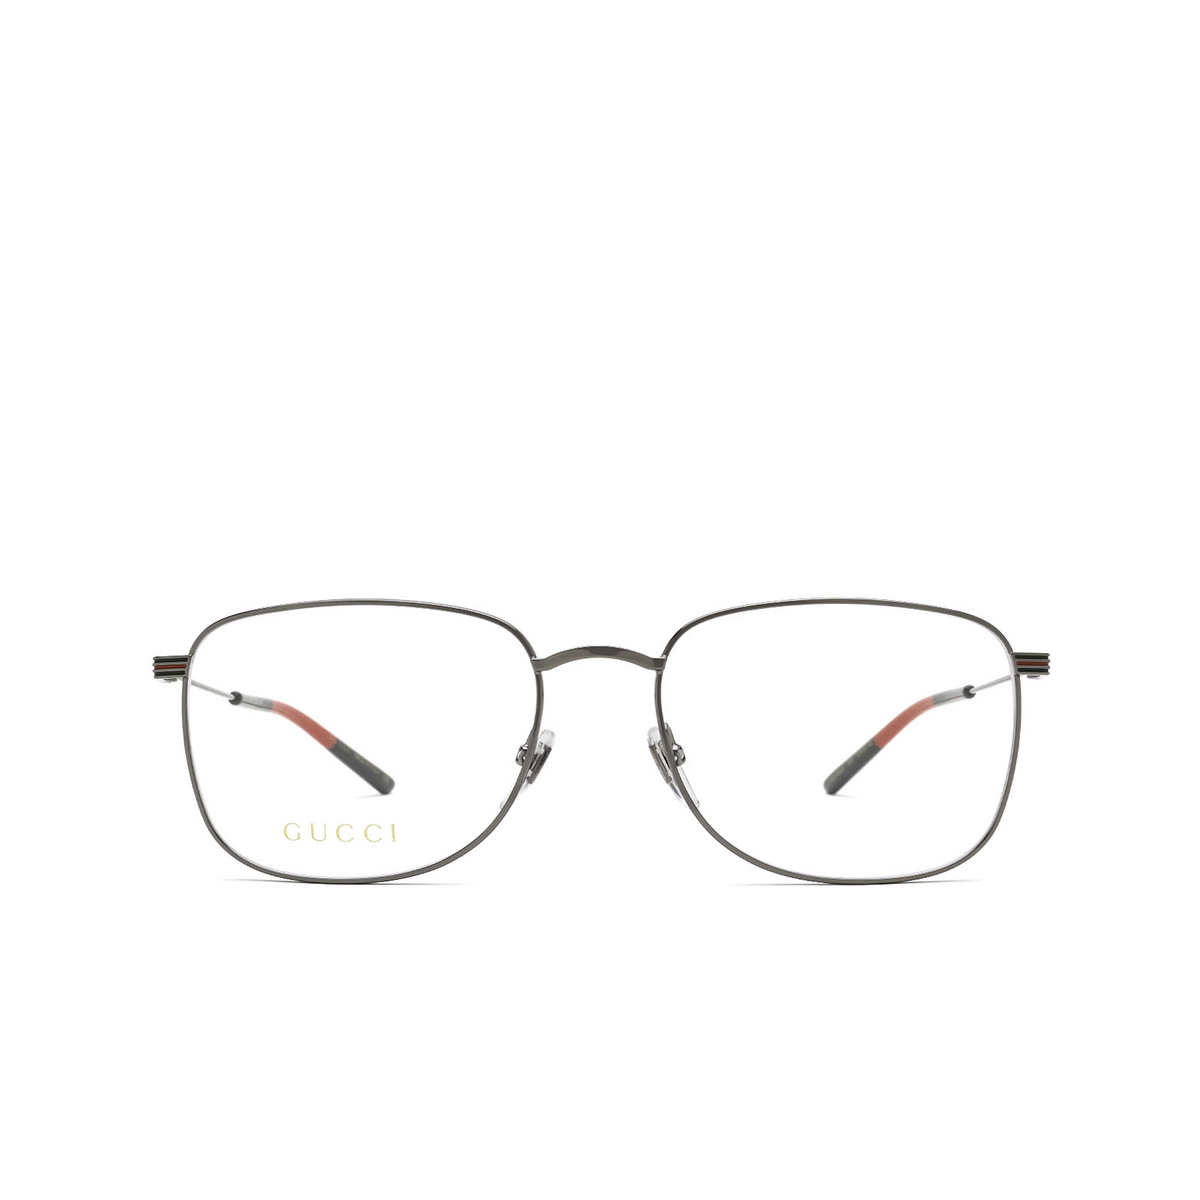 Gucci® Square Eyeglasses: GG1052O color Ruthenium 005 - front view.